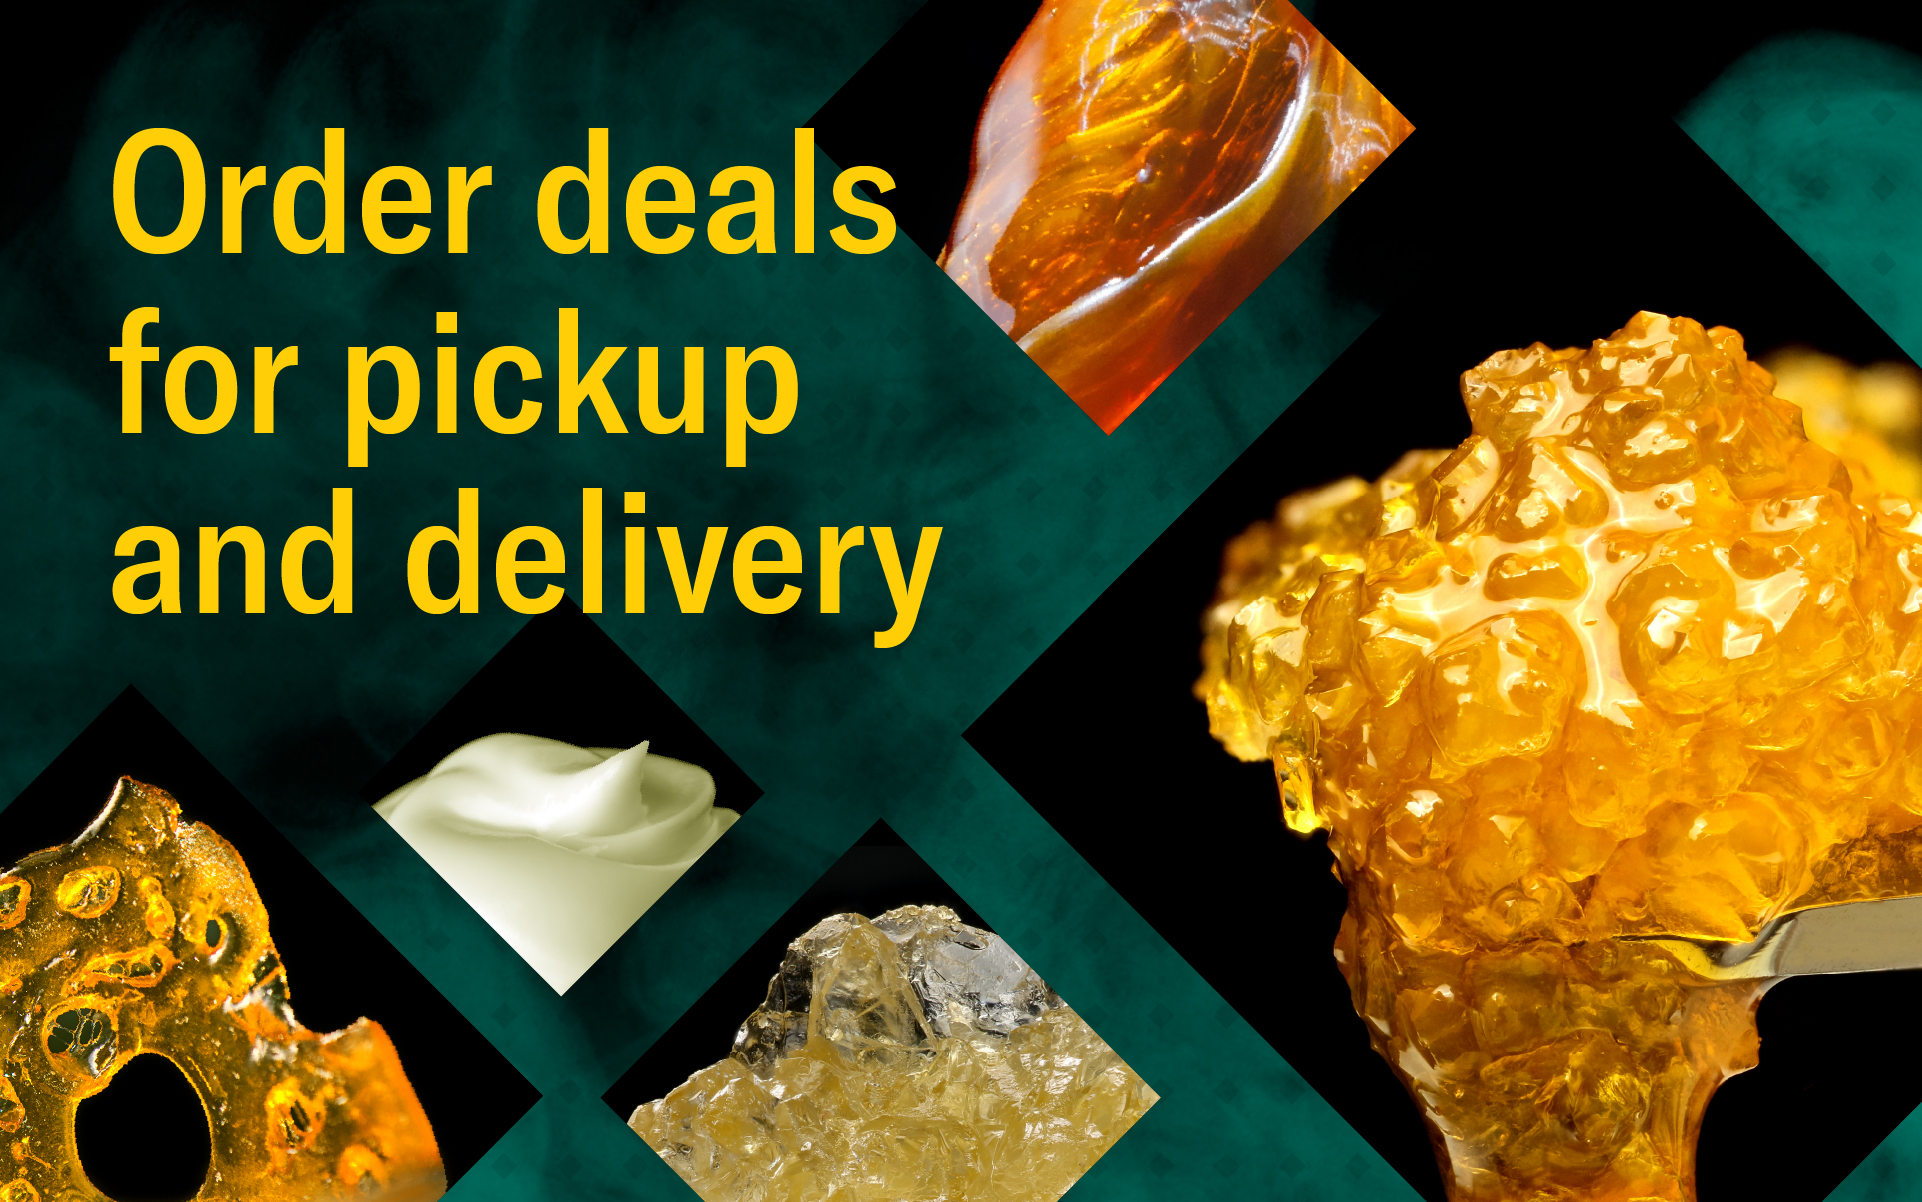 Order marijuana deals for pickup and delivery